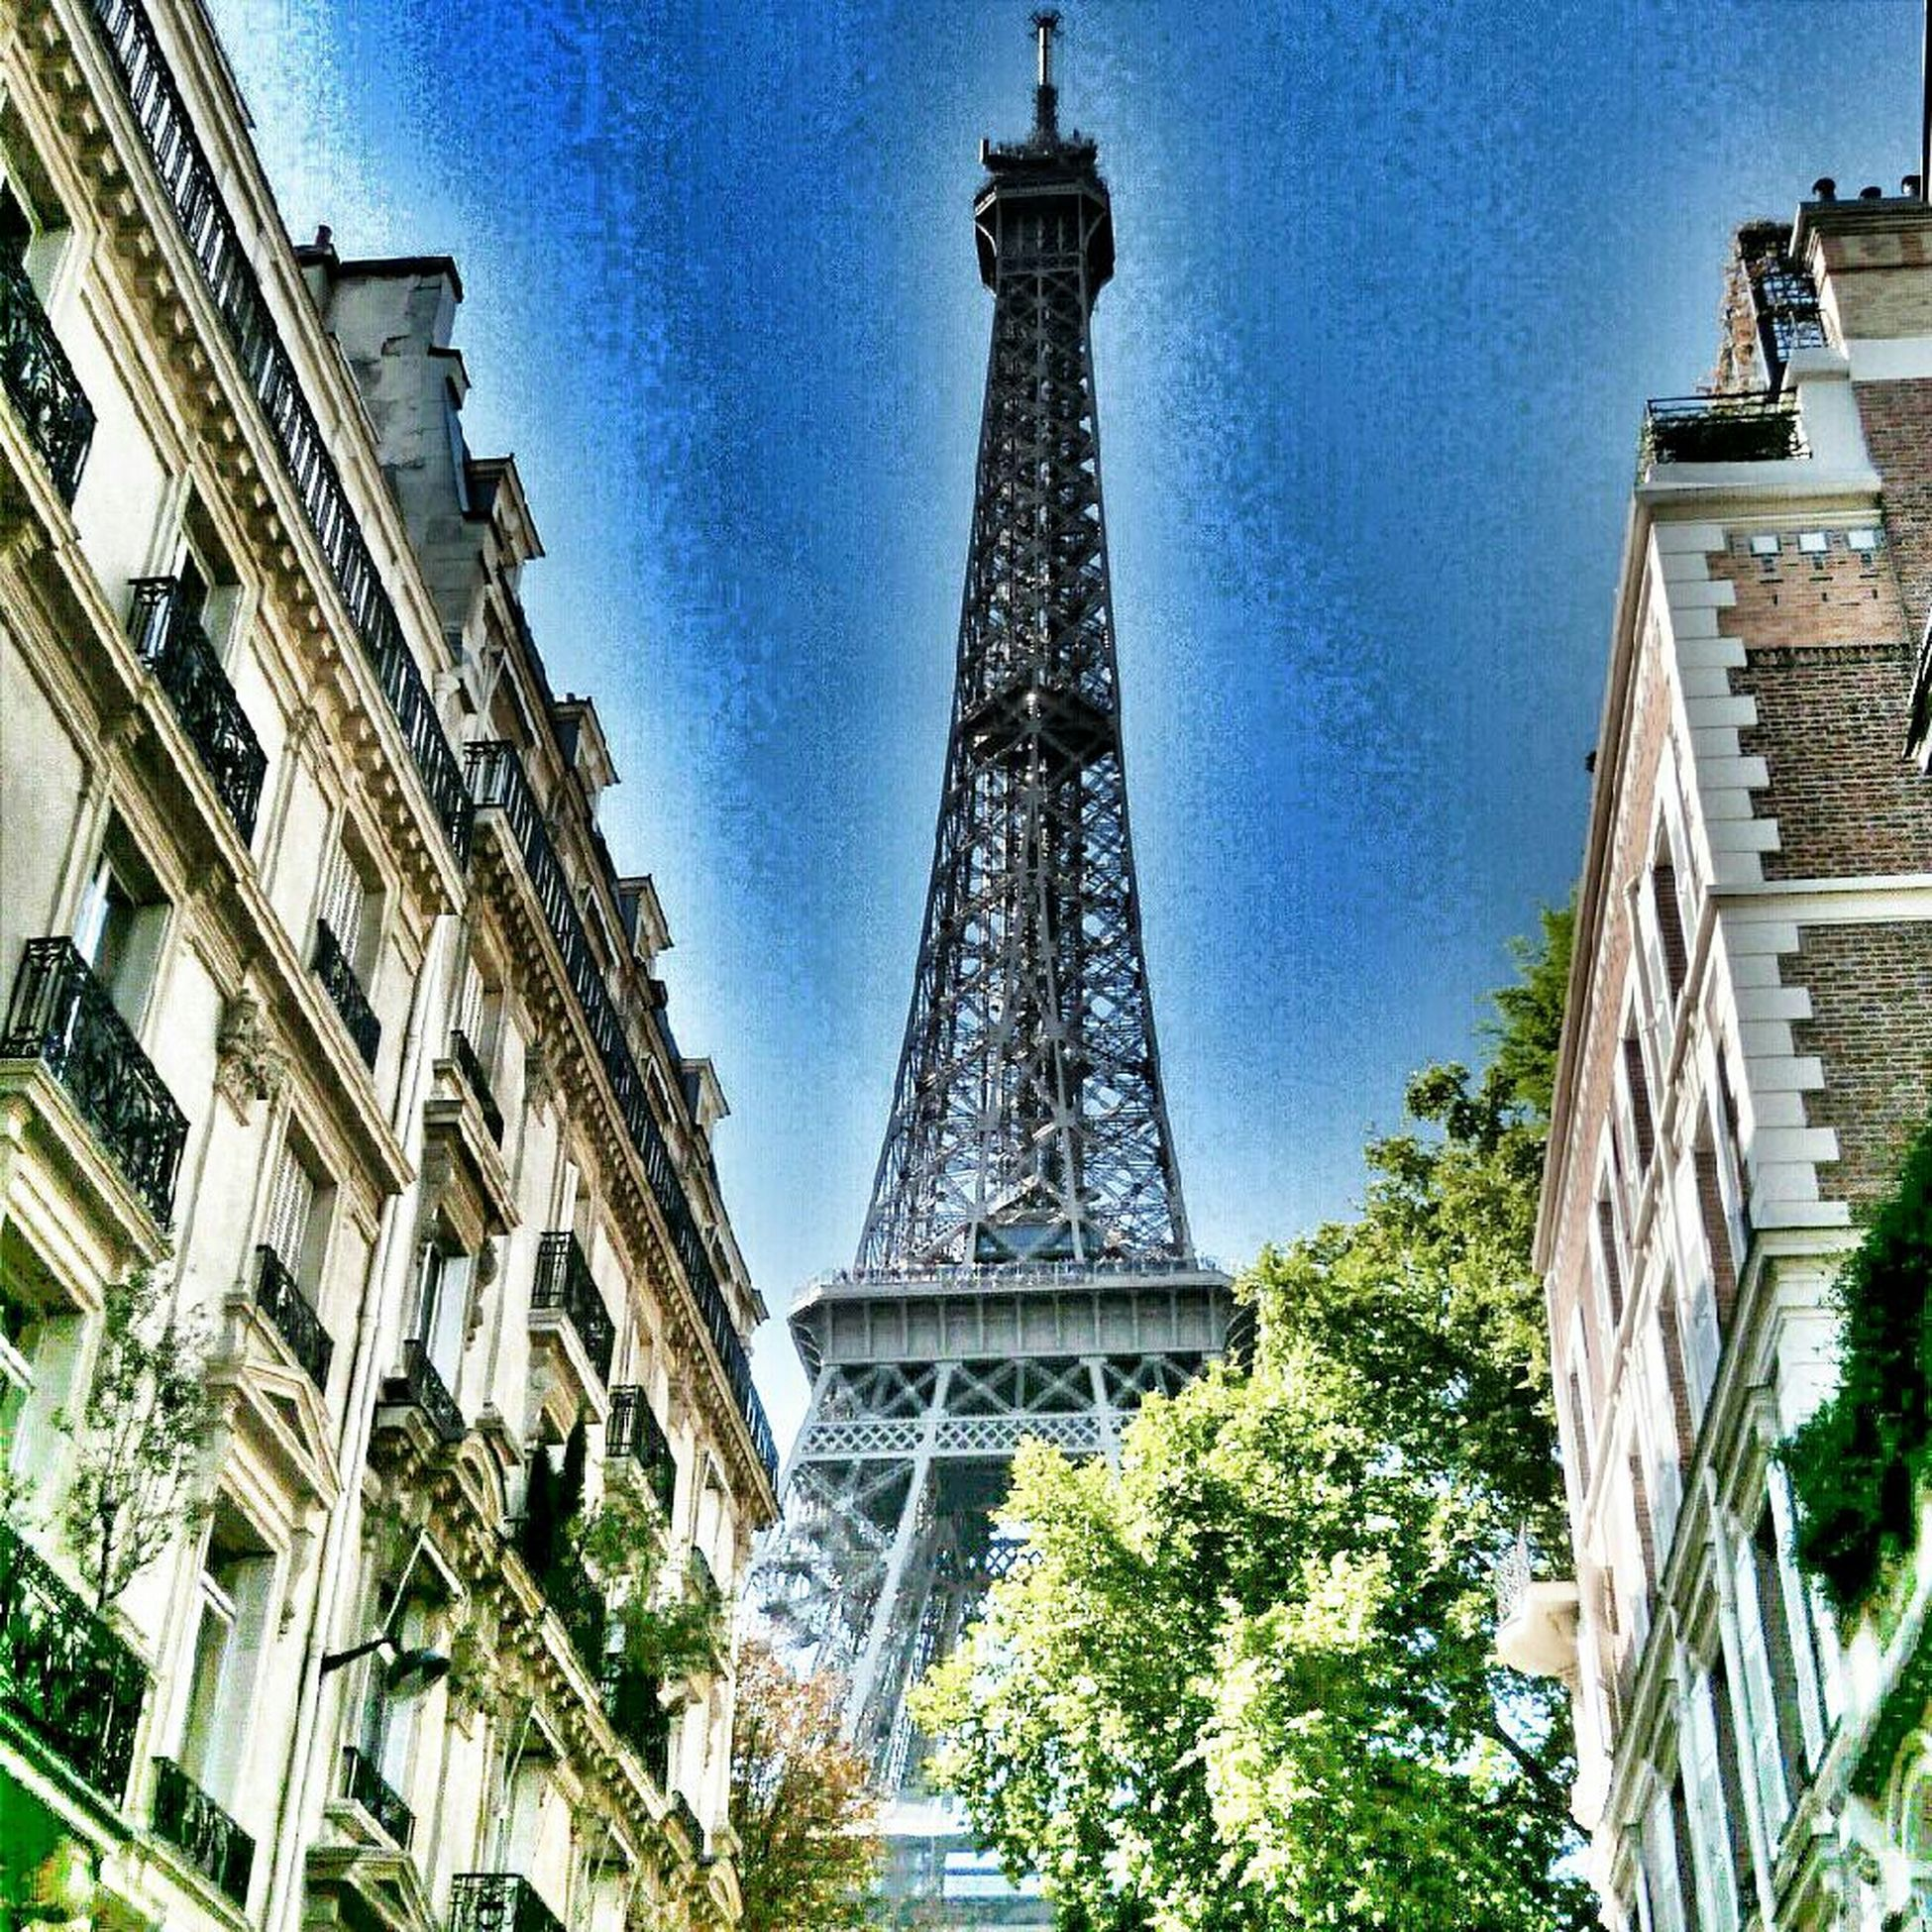 architecture, built structure, building exterior, tower, tall - high, low angle view, city, famous place, travel destinations, capital cities, international landmark, eiffel tower, tourism, tree, sky, travel, blue, tall, skyscraper, day